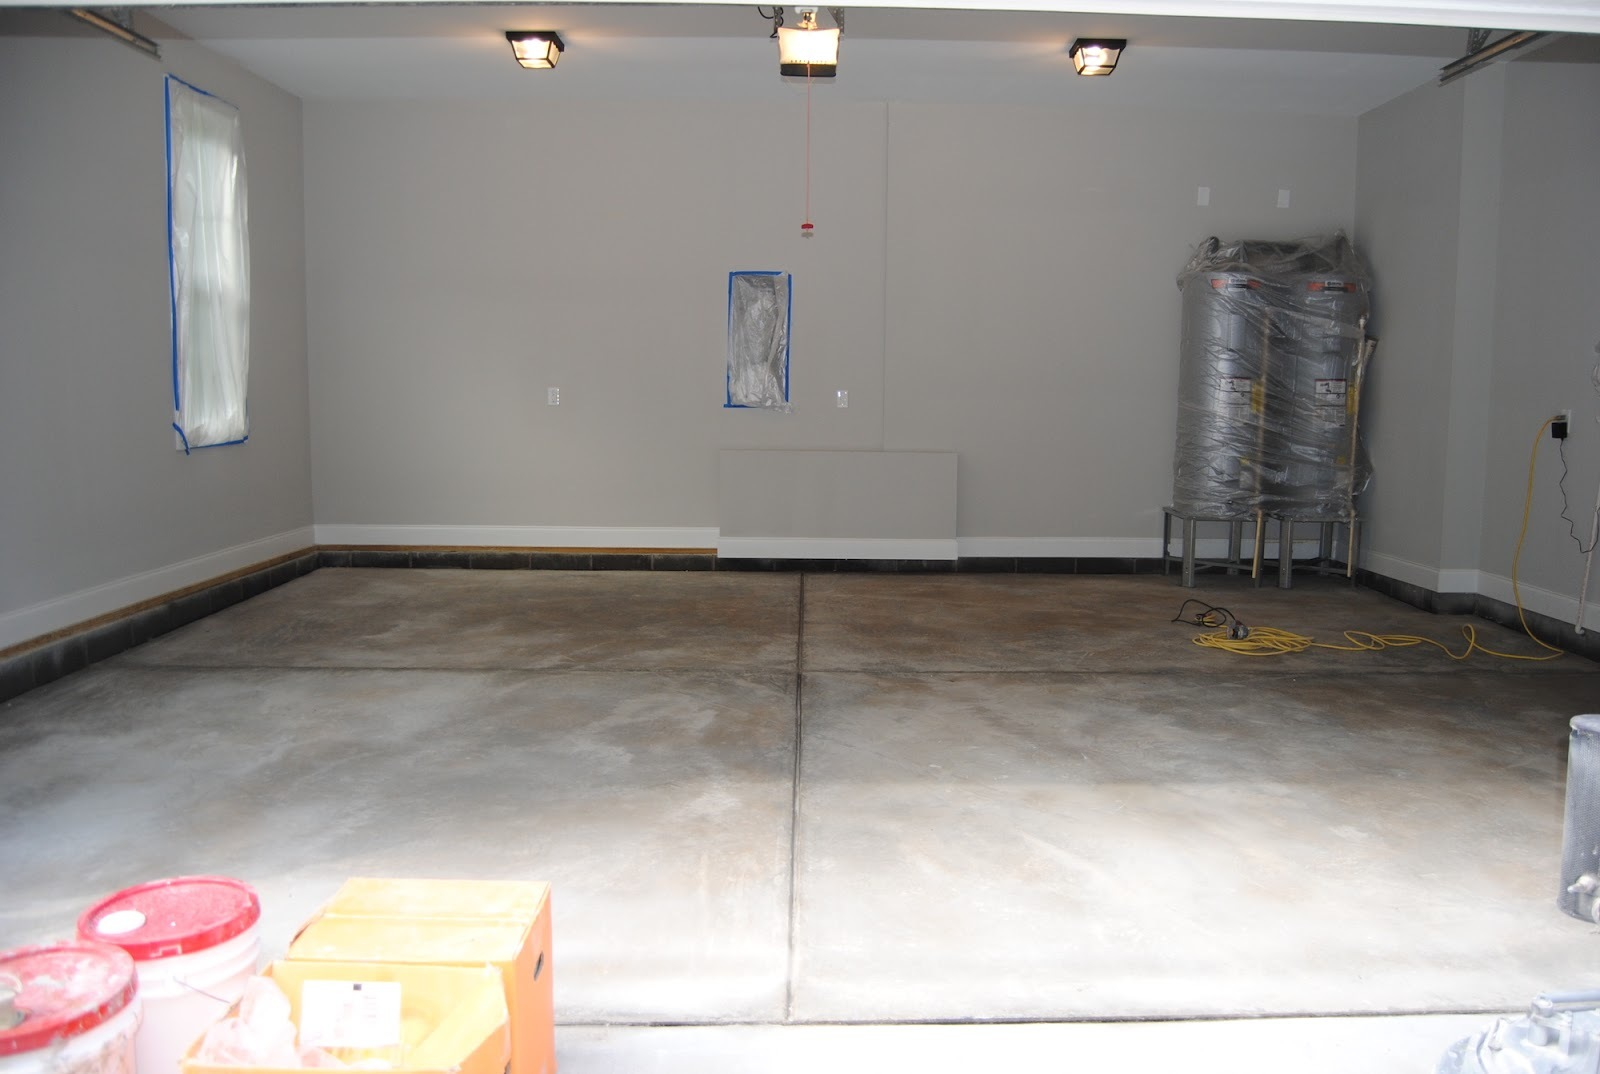 Concrete floor before a paint coating